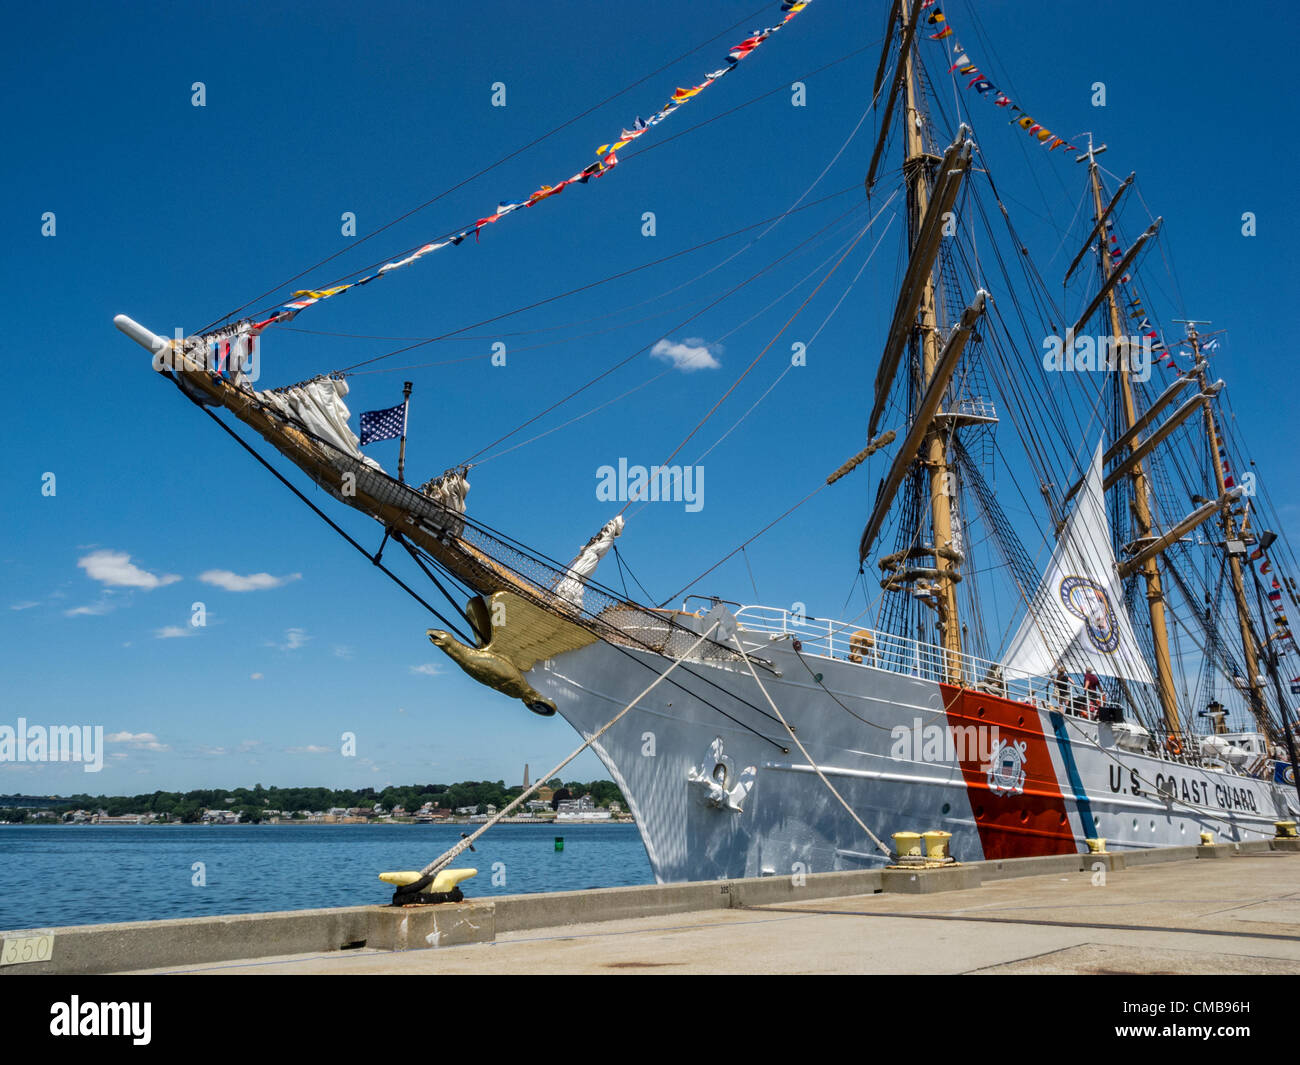 New London, Connecticut, USA - July 9, 2012: The US Coast Guard training ship Eagle moored at Fort Trumbull on theStock Photo